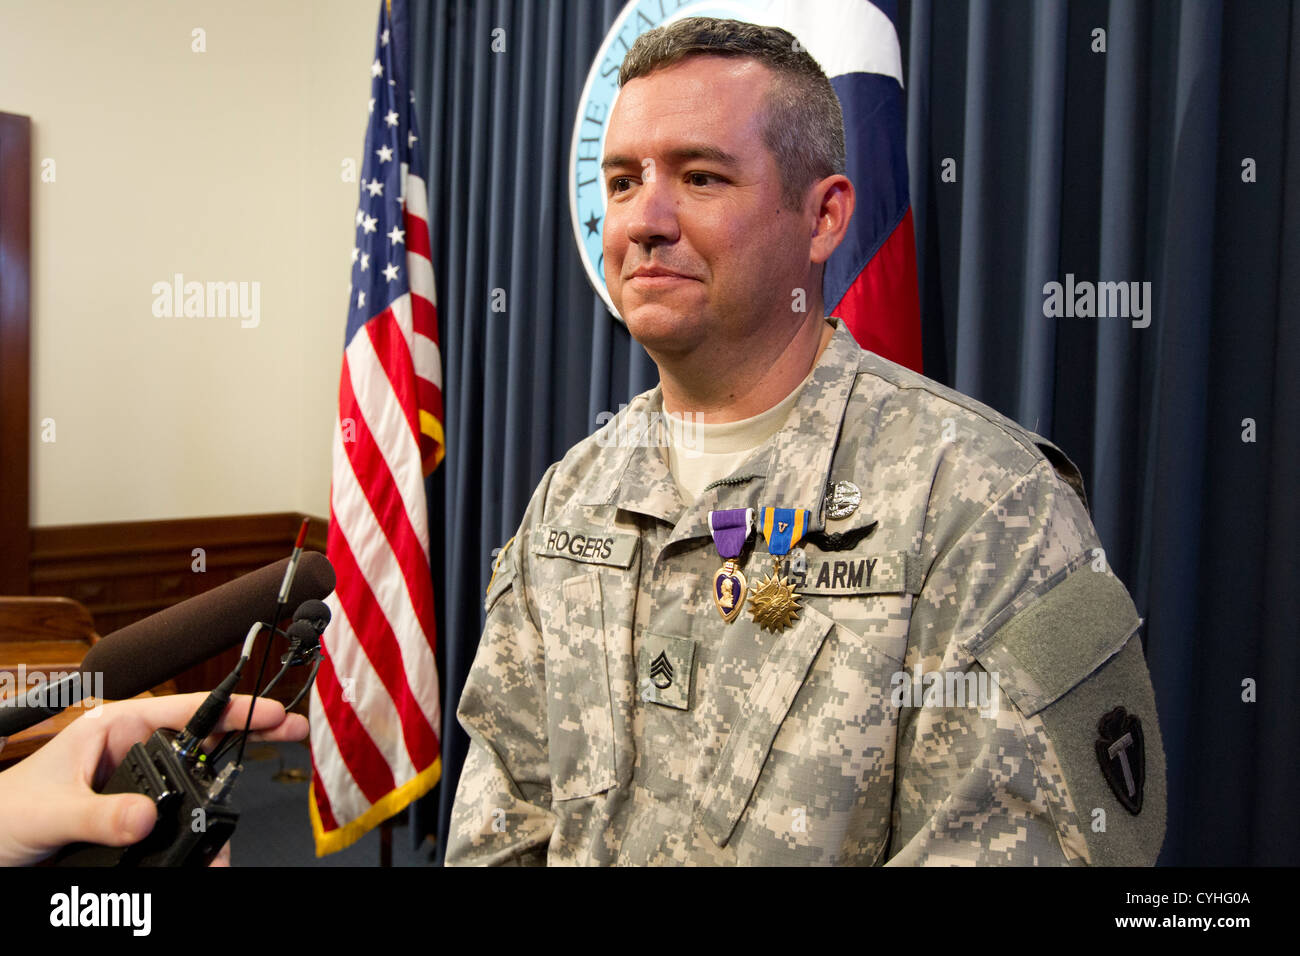 Staff Sergeant Patrick Rogers talks to the media after receiving the Purple Heart from Texas Governor Rick Perry - Stock Image